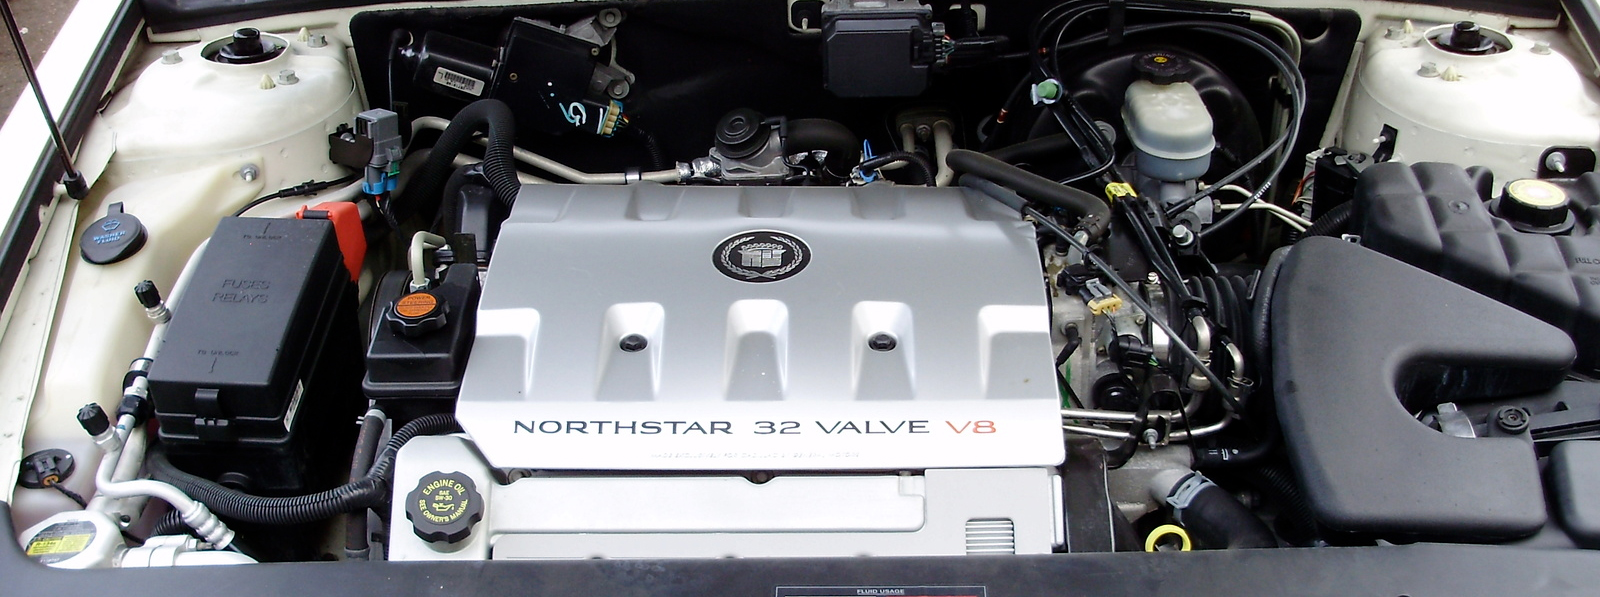 Cadillac Northstar Engine Repair